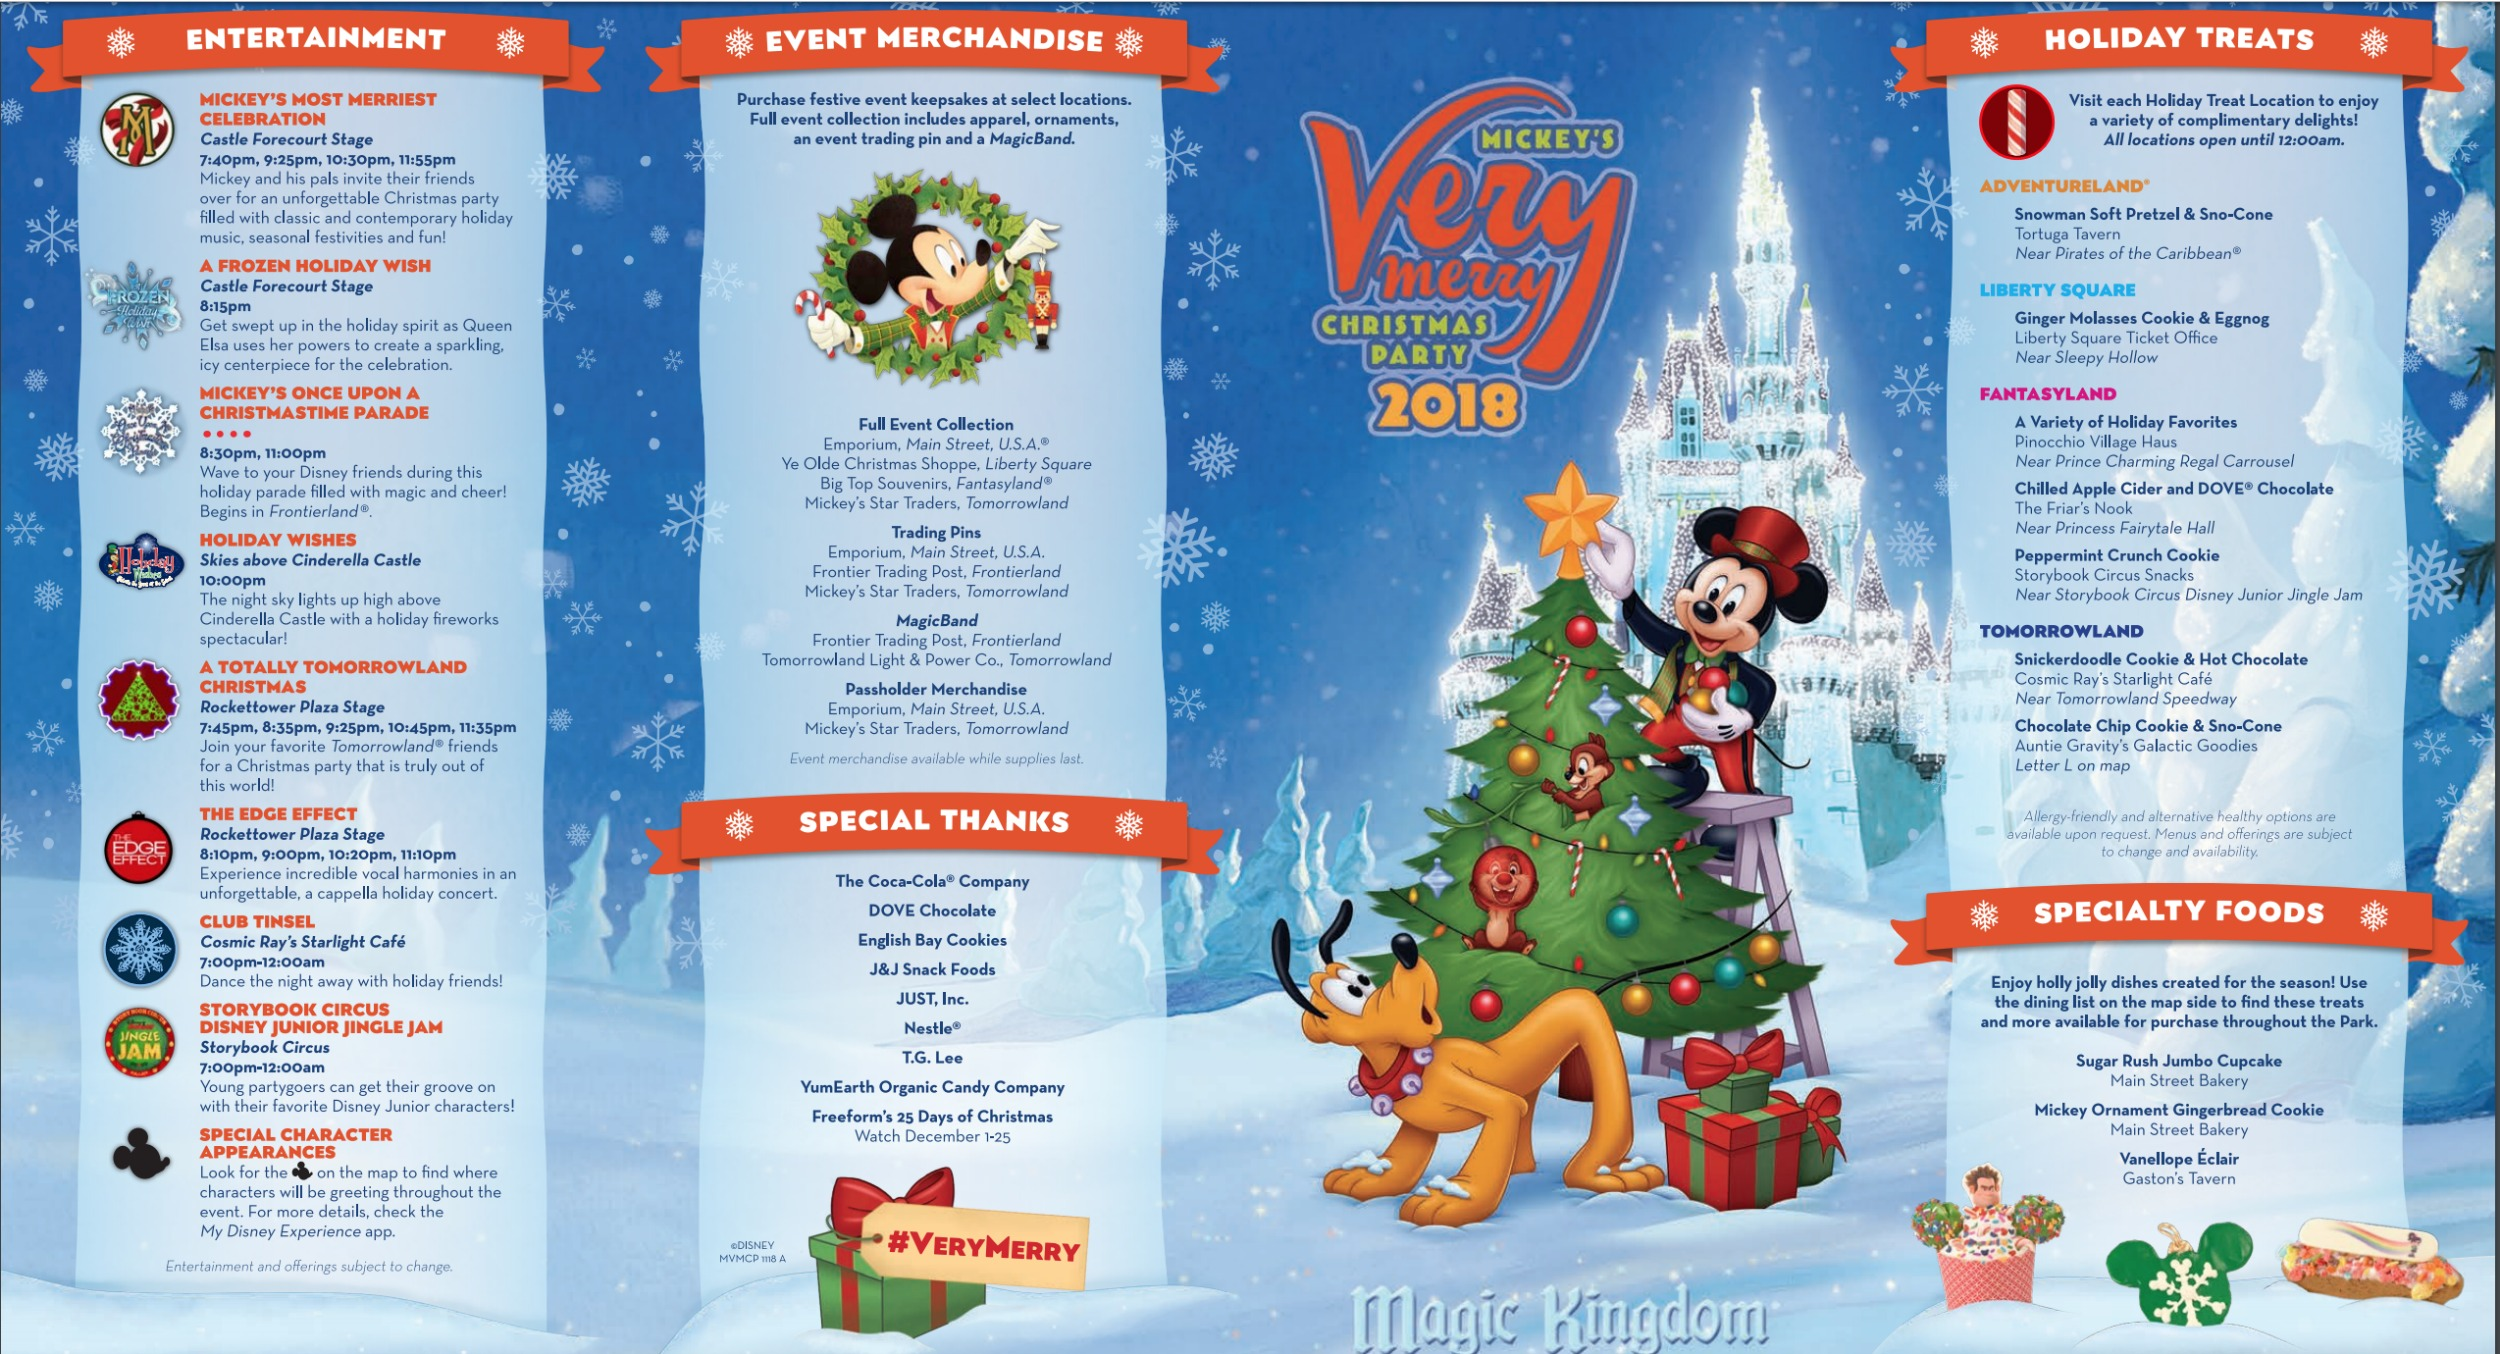 Ultimate Guide To Holidays At Walt Disney World – Second